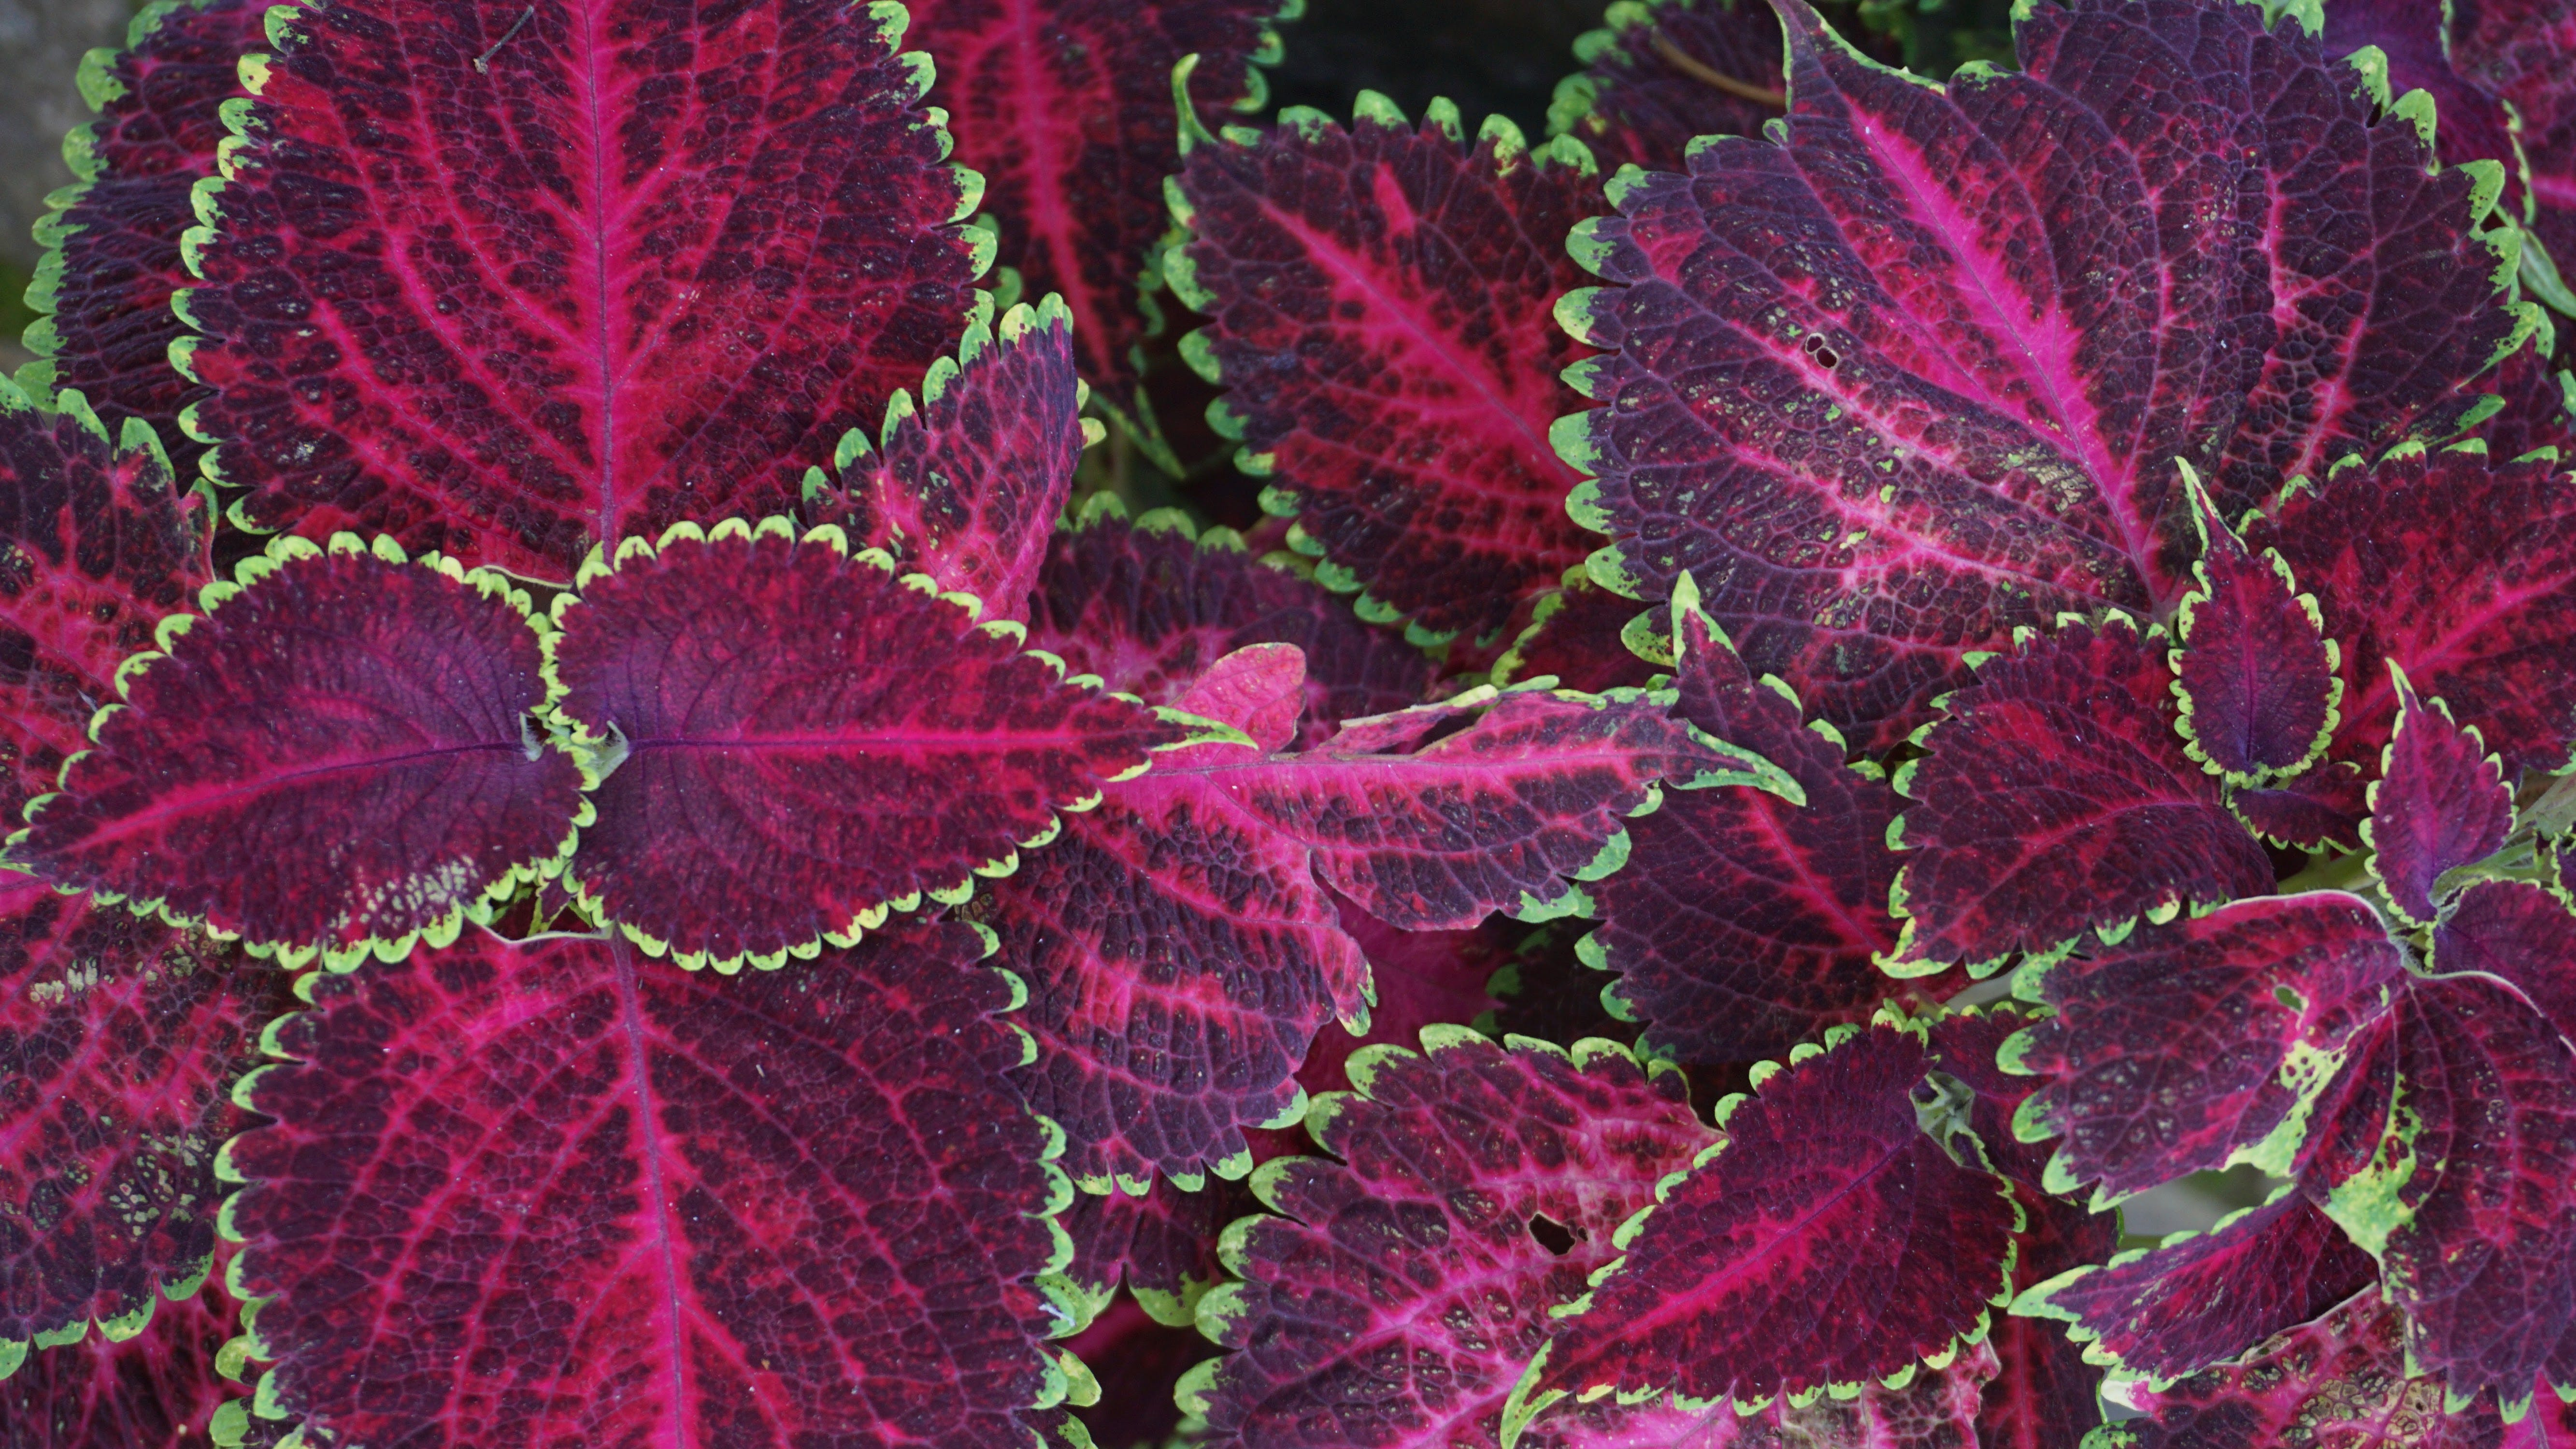 Red-and-green Leafed Plants